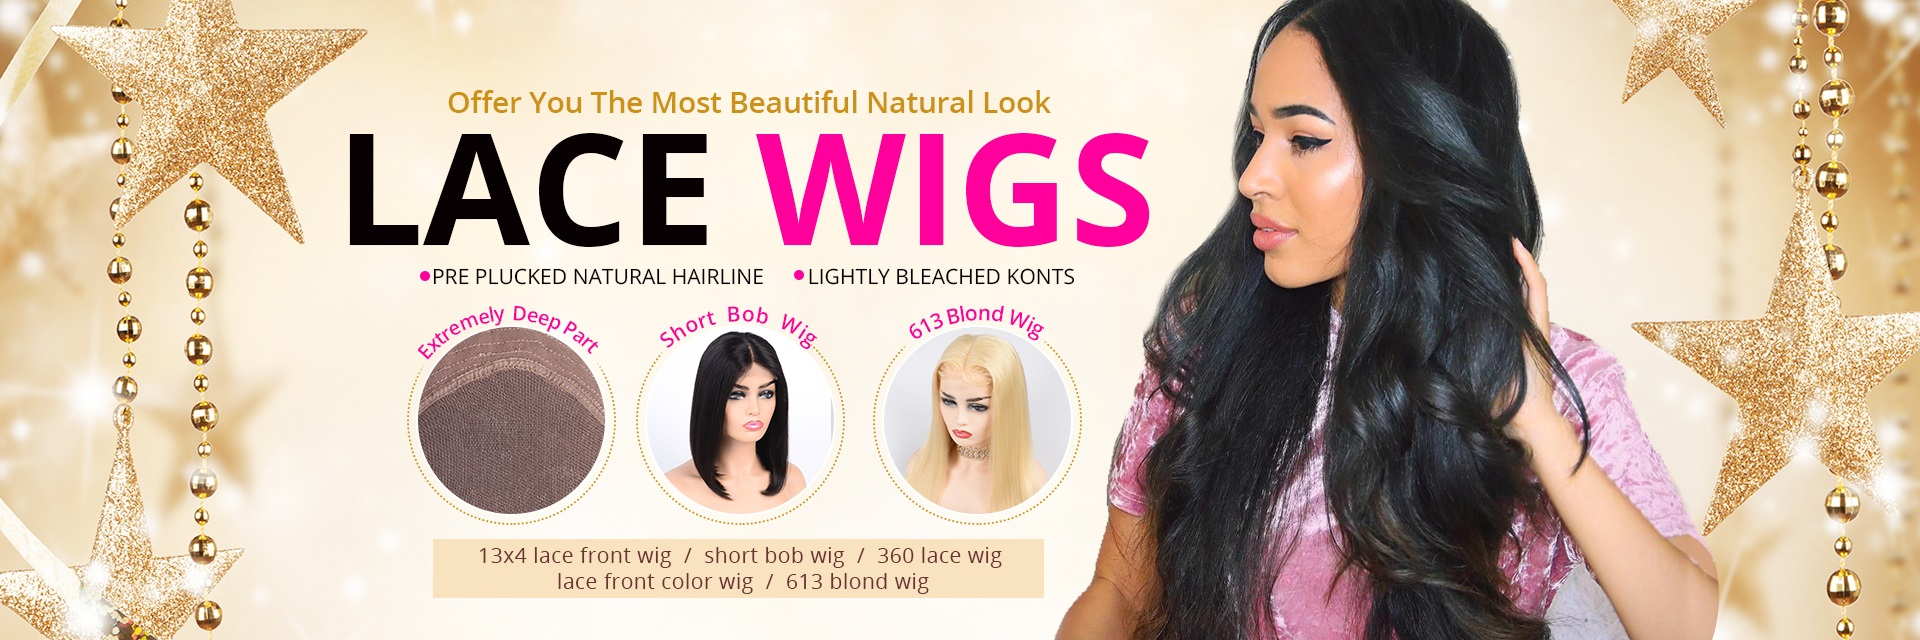 f4cf9f9ed Full Lace Wigs,Lace Front Wigs,Blonde Ombre Wig,4*4 Lace Wig,360 Lace  Frontal Wigs -Alipearl Hair